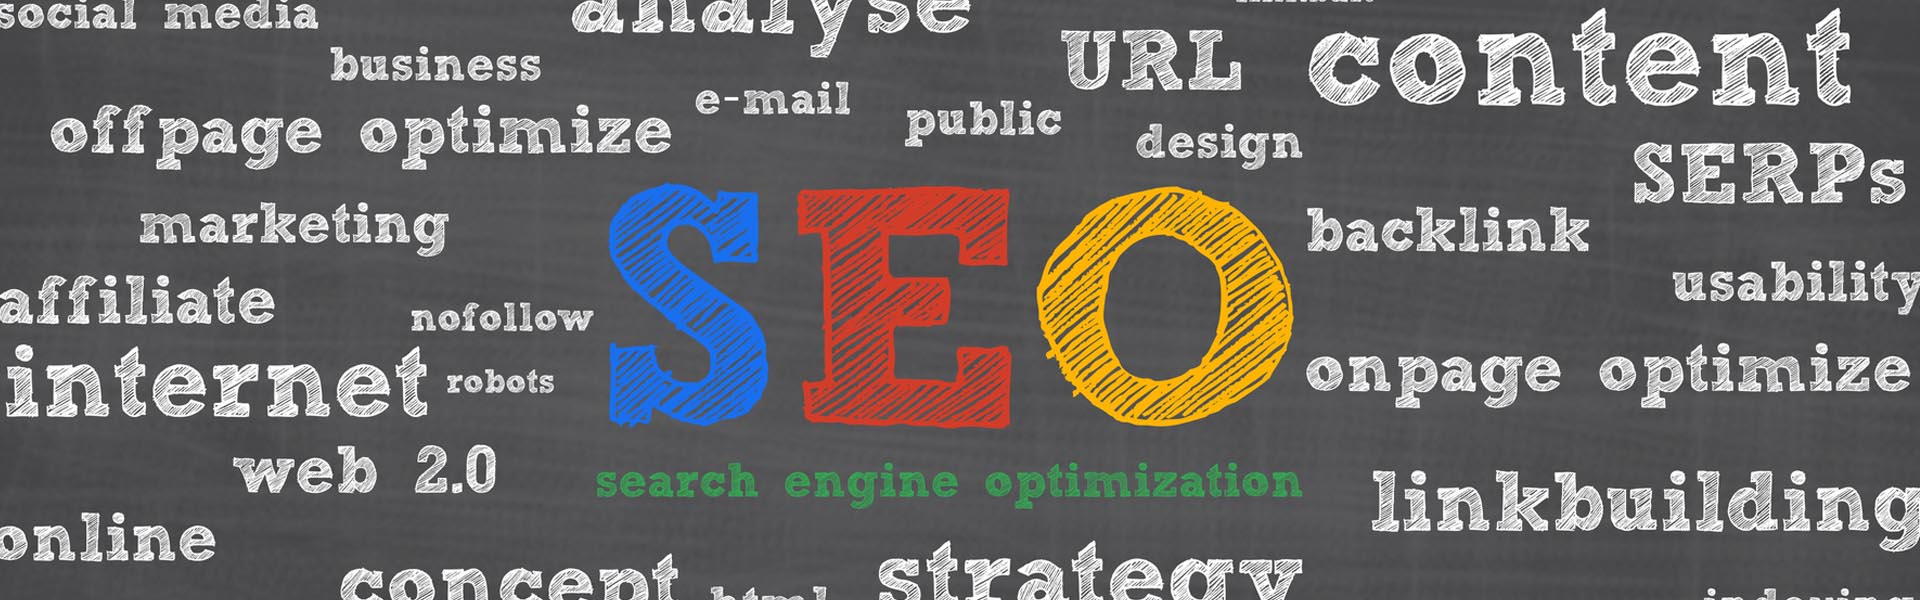 Learn more about SEO